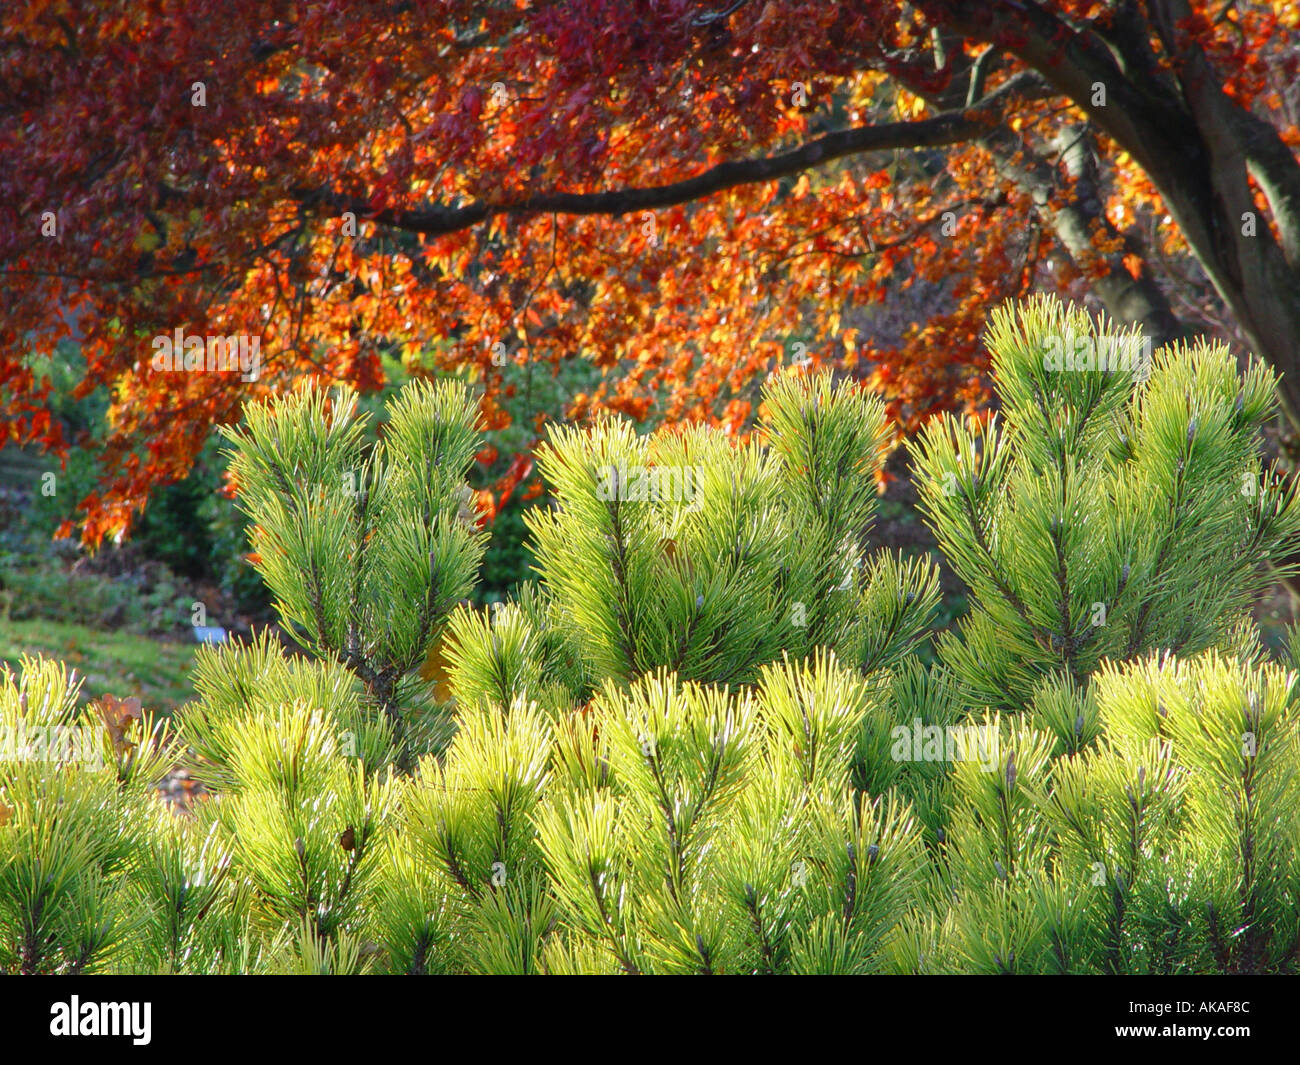 Pinus mugo Ophir with autumn tinted japanese acer in background - Stock Image